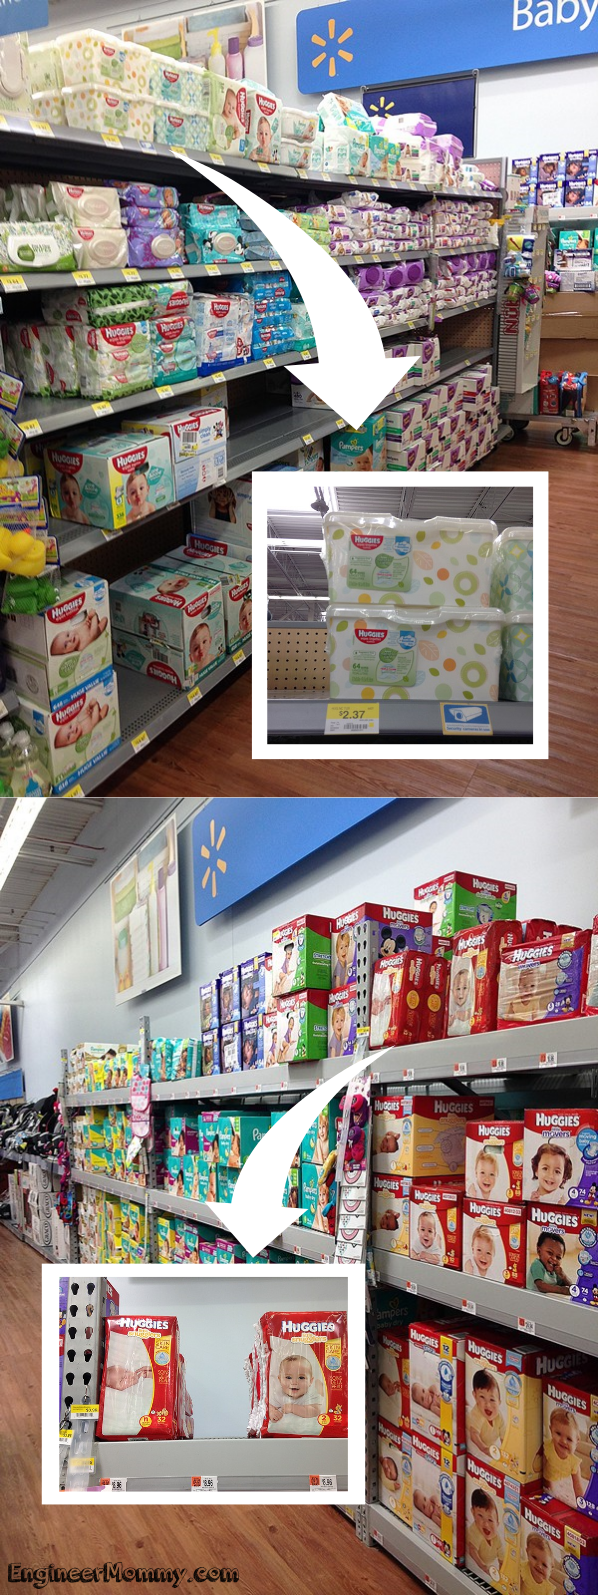 Finding the  Huggies® products at Walmart